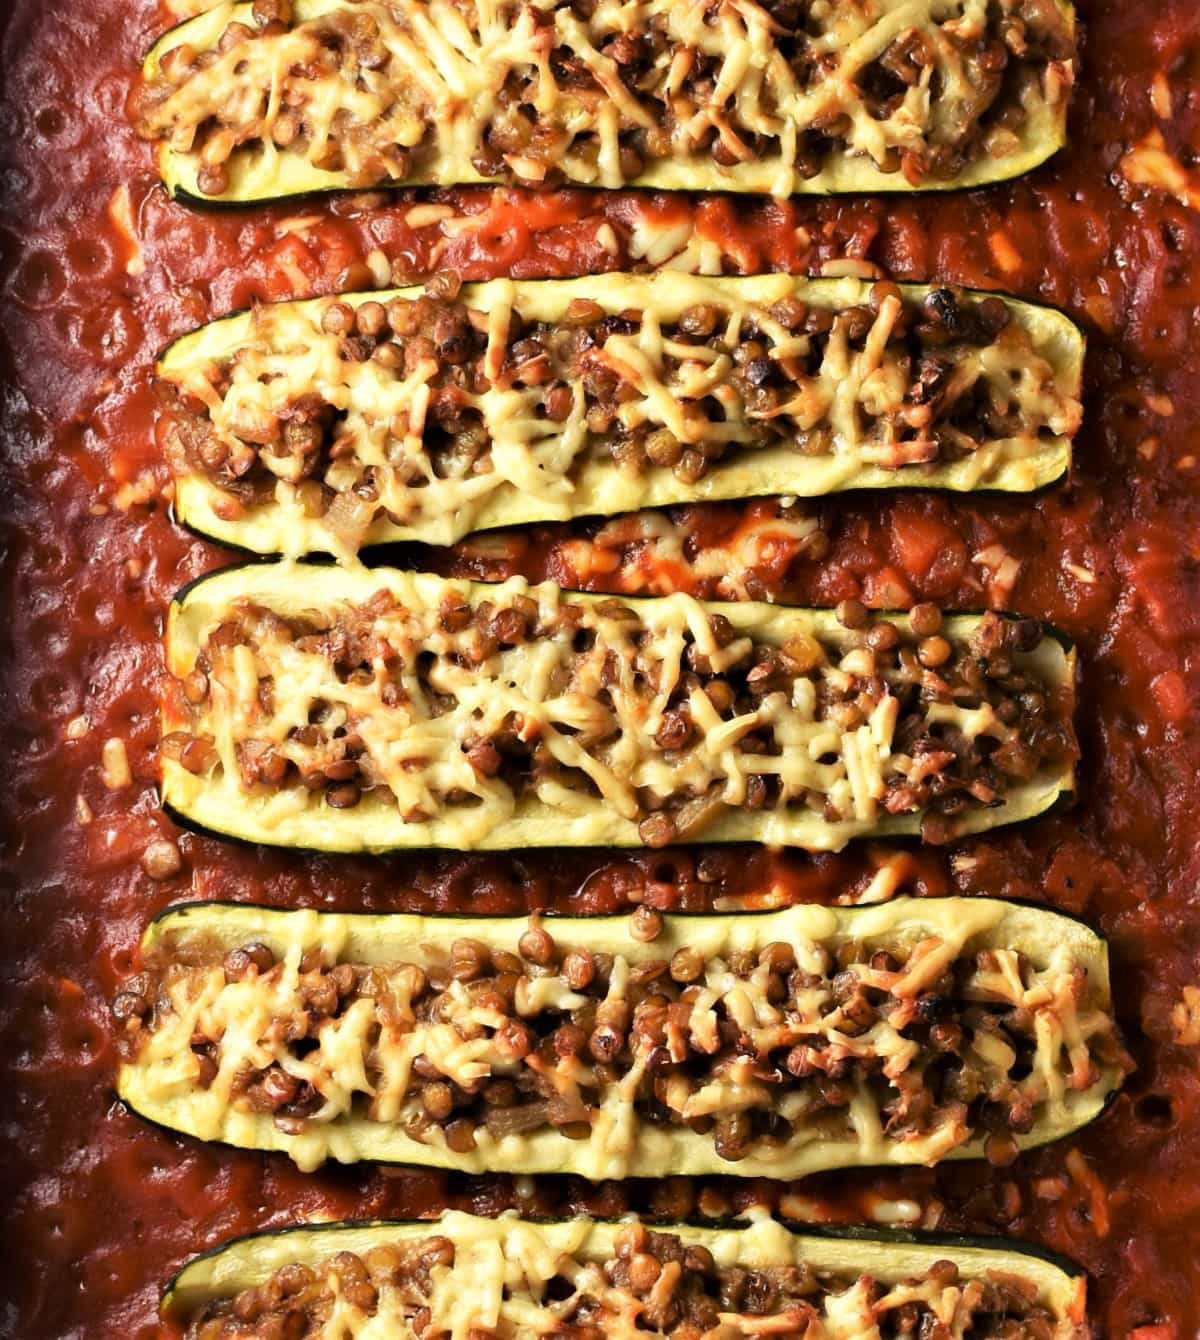 Vegetarian Stuffed Zucchini Casserole Everyday Healthy Recipes